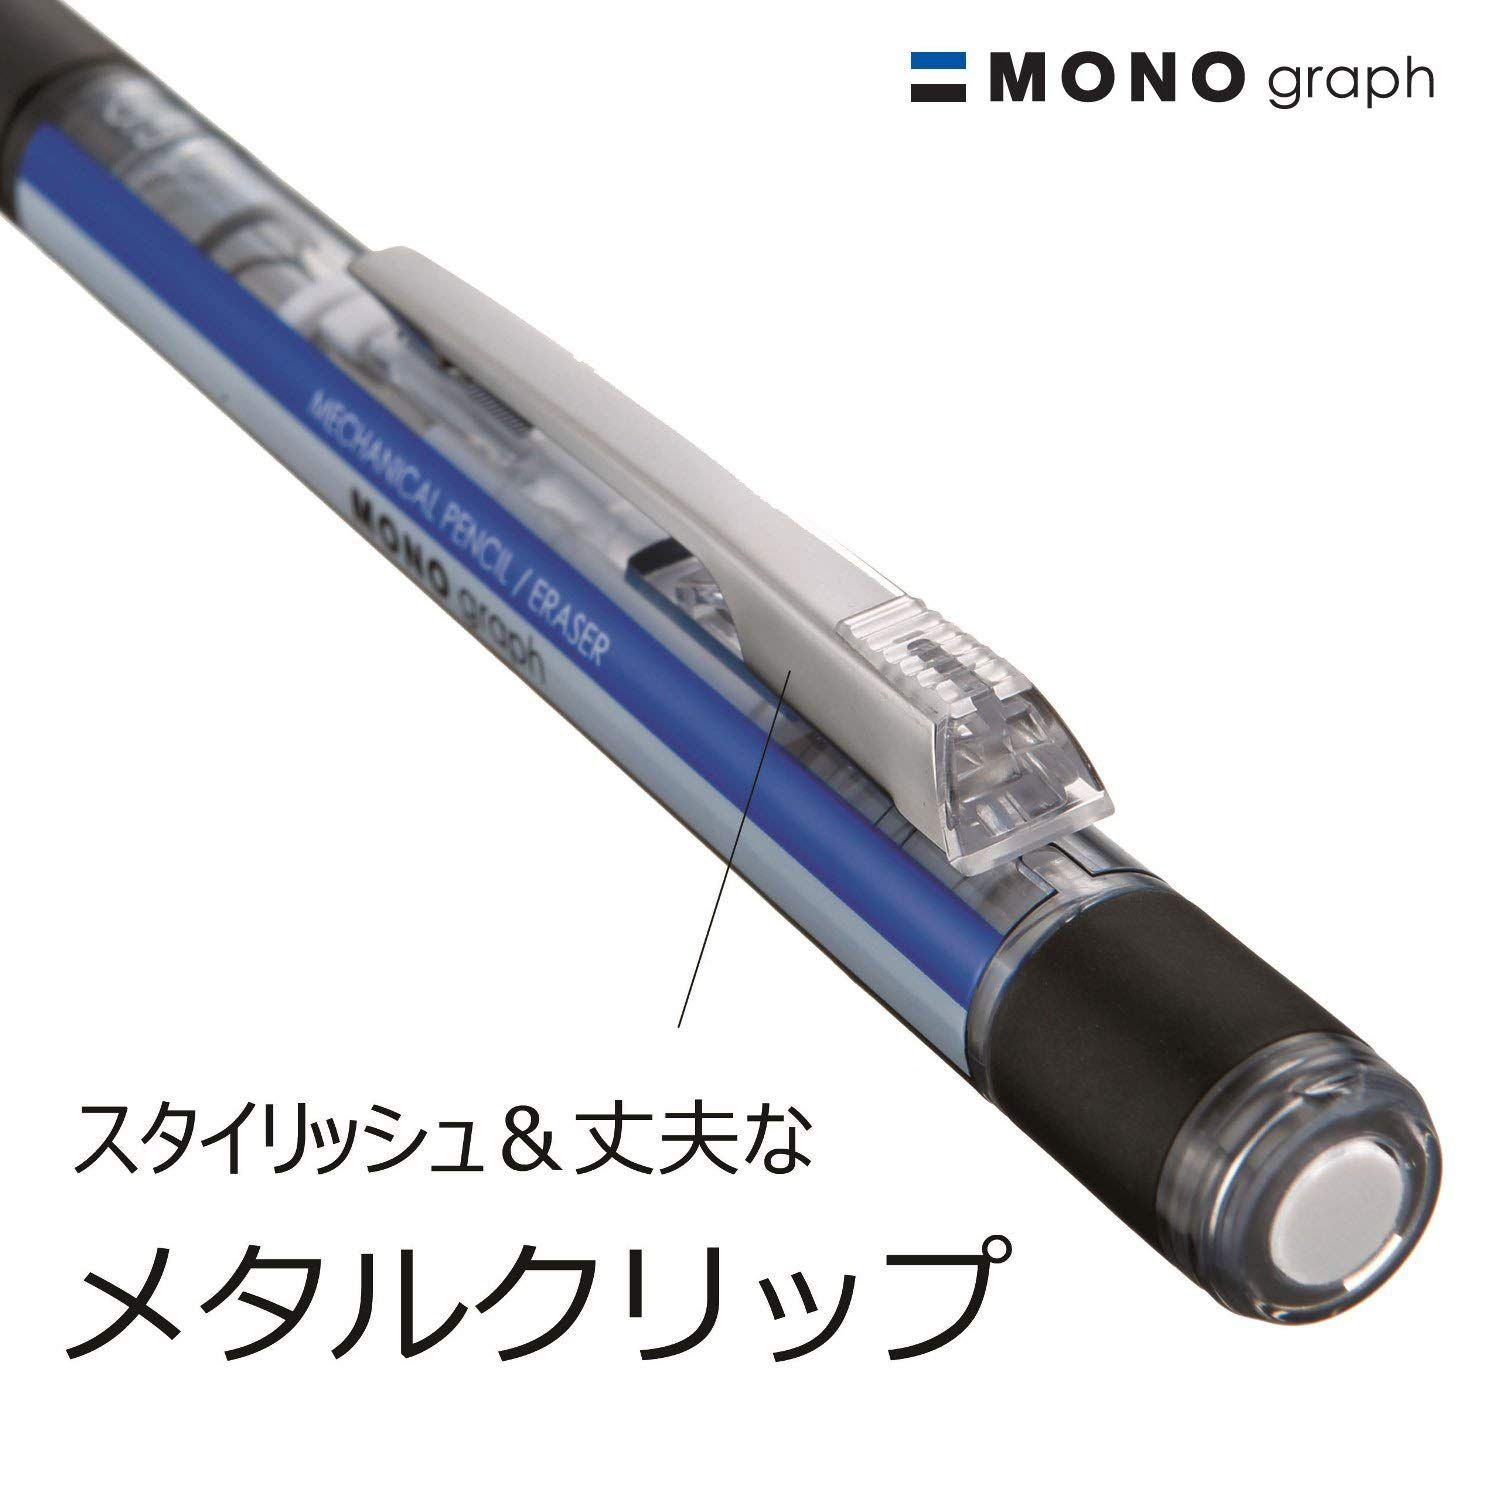 Lapiseira Tombow Mono Graph 0,5mm Rosa - Made In Japan